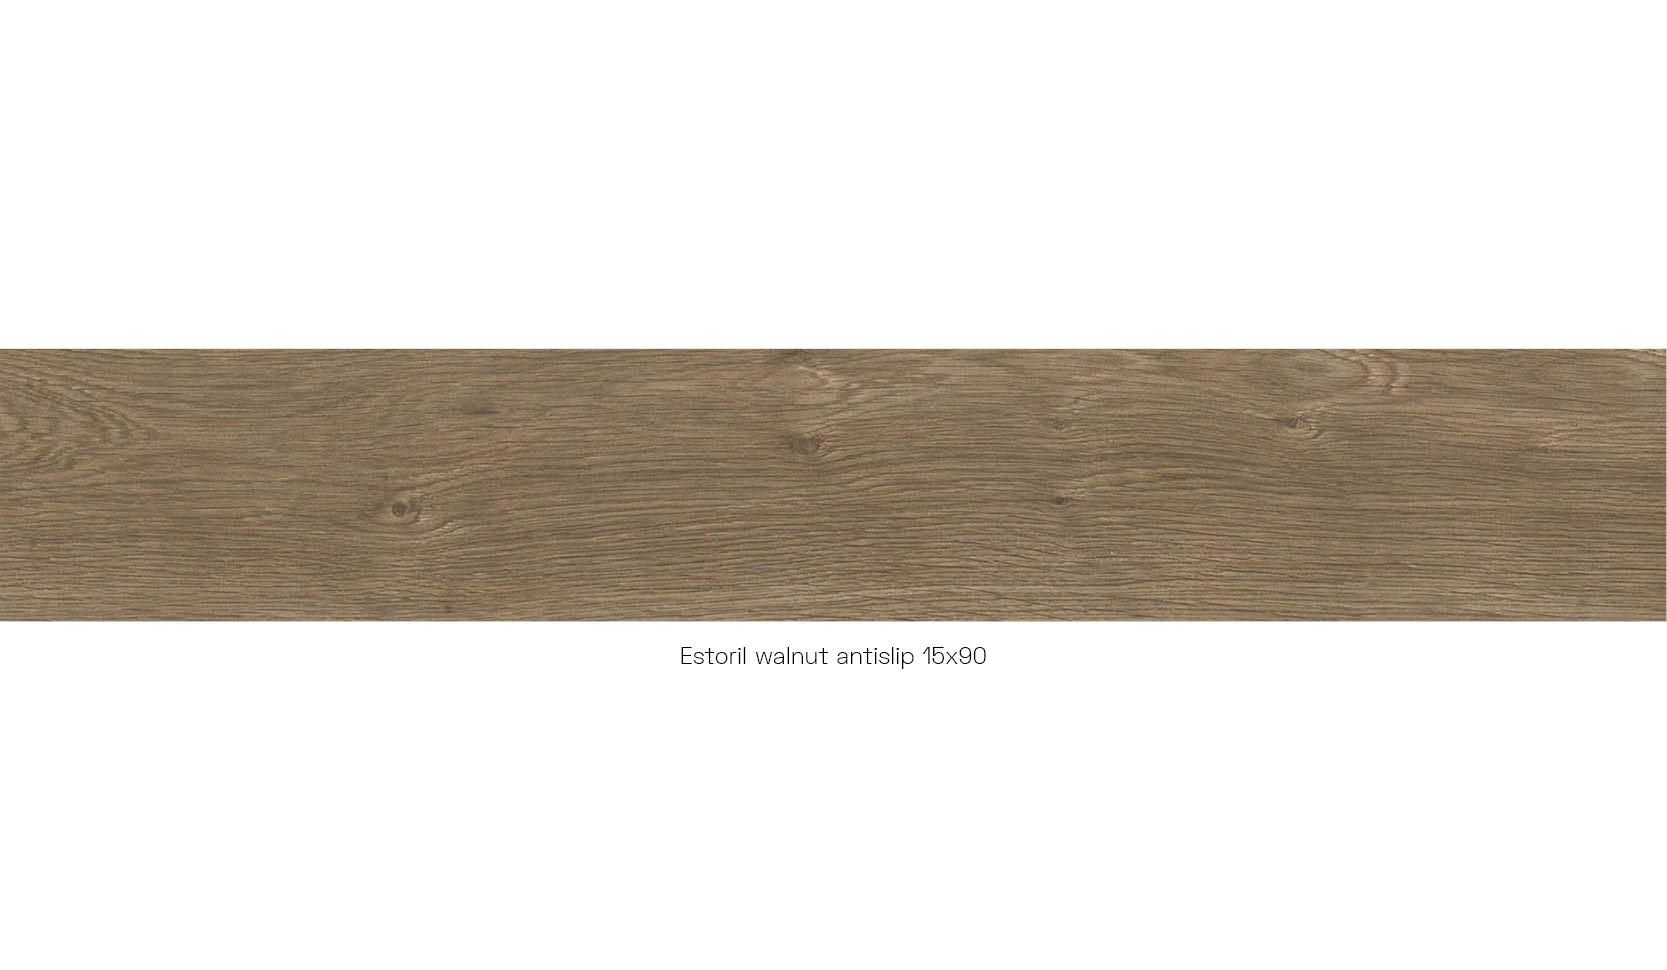 Estoril walnut antislip 15 x 90